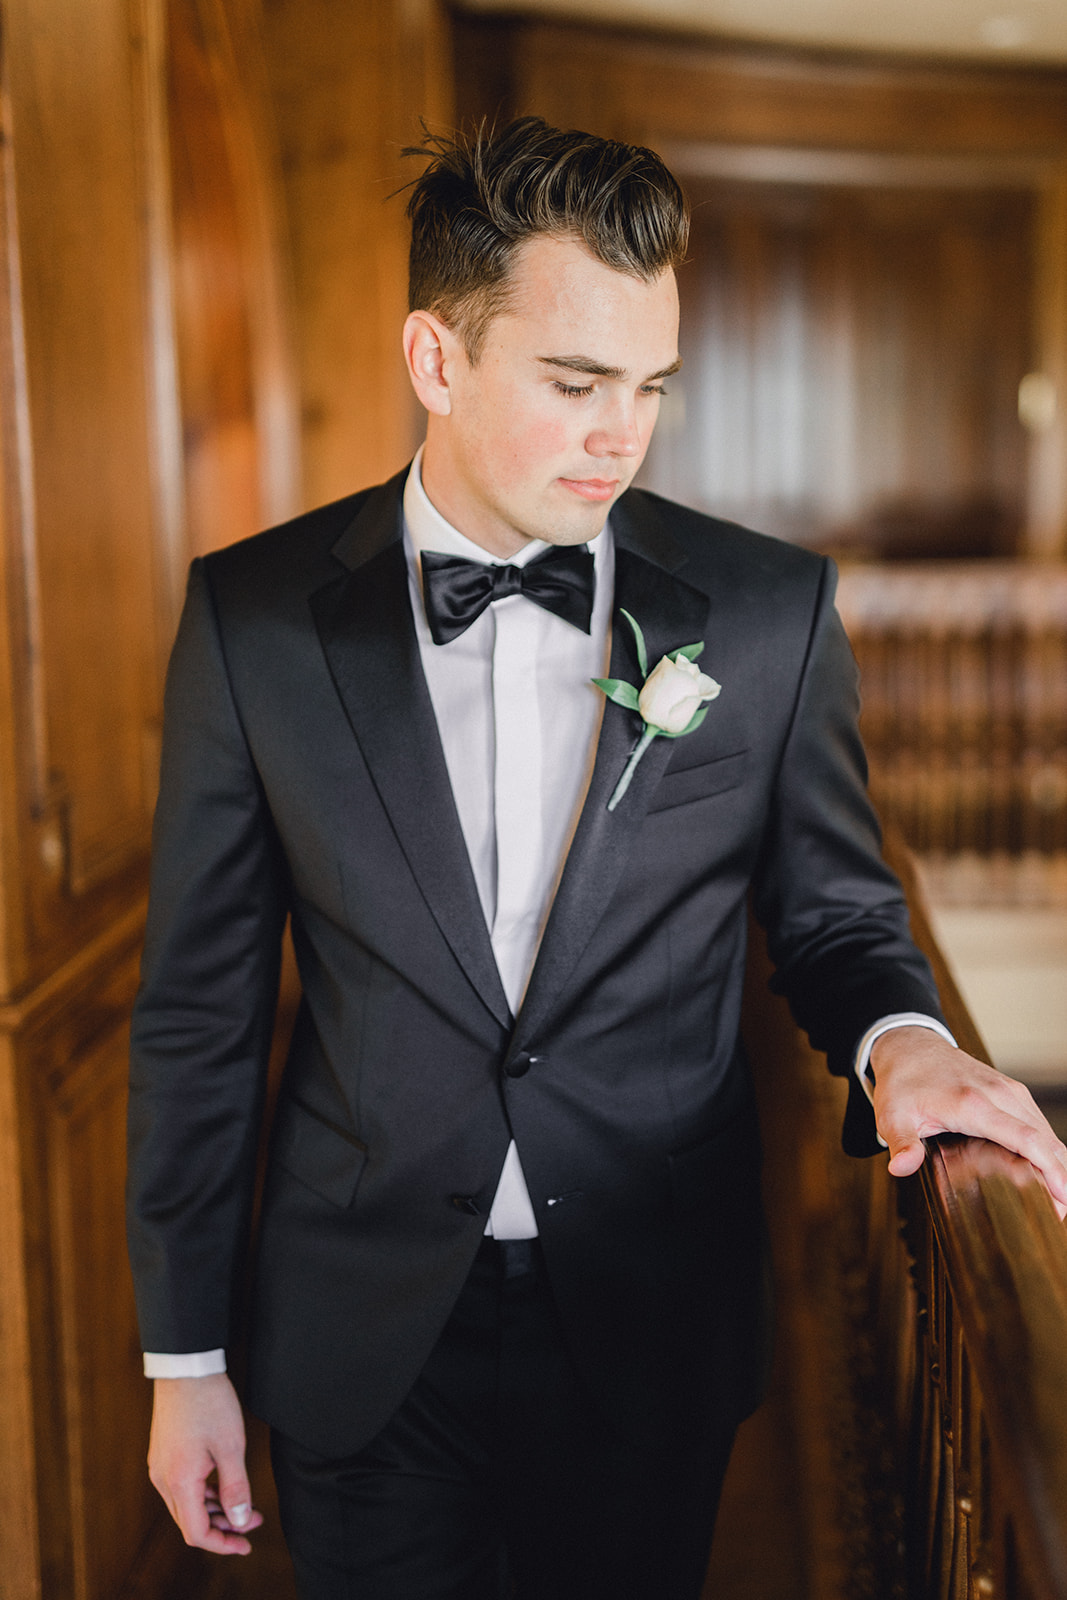 Grooms portrait: Timeless Wedding at The Olana featured on Alexa Kay Events!